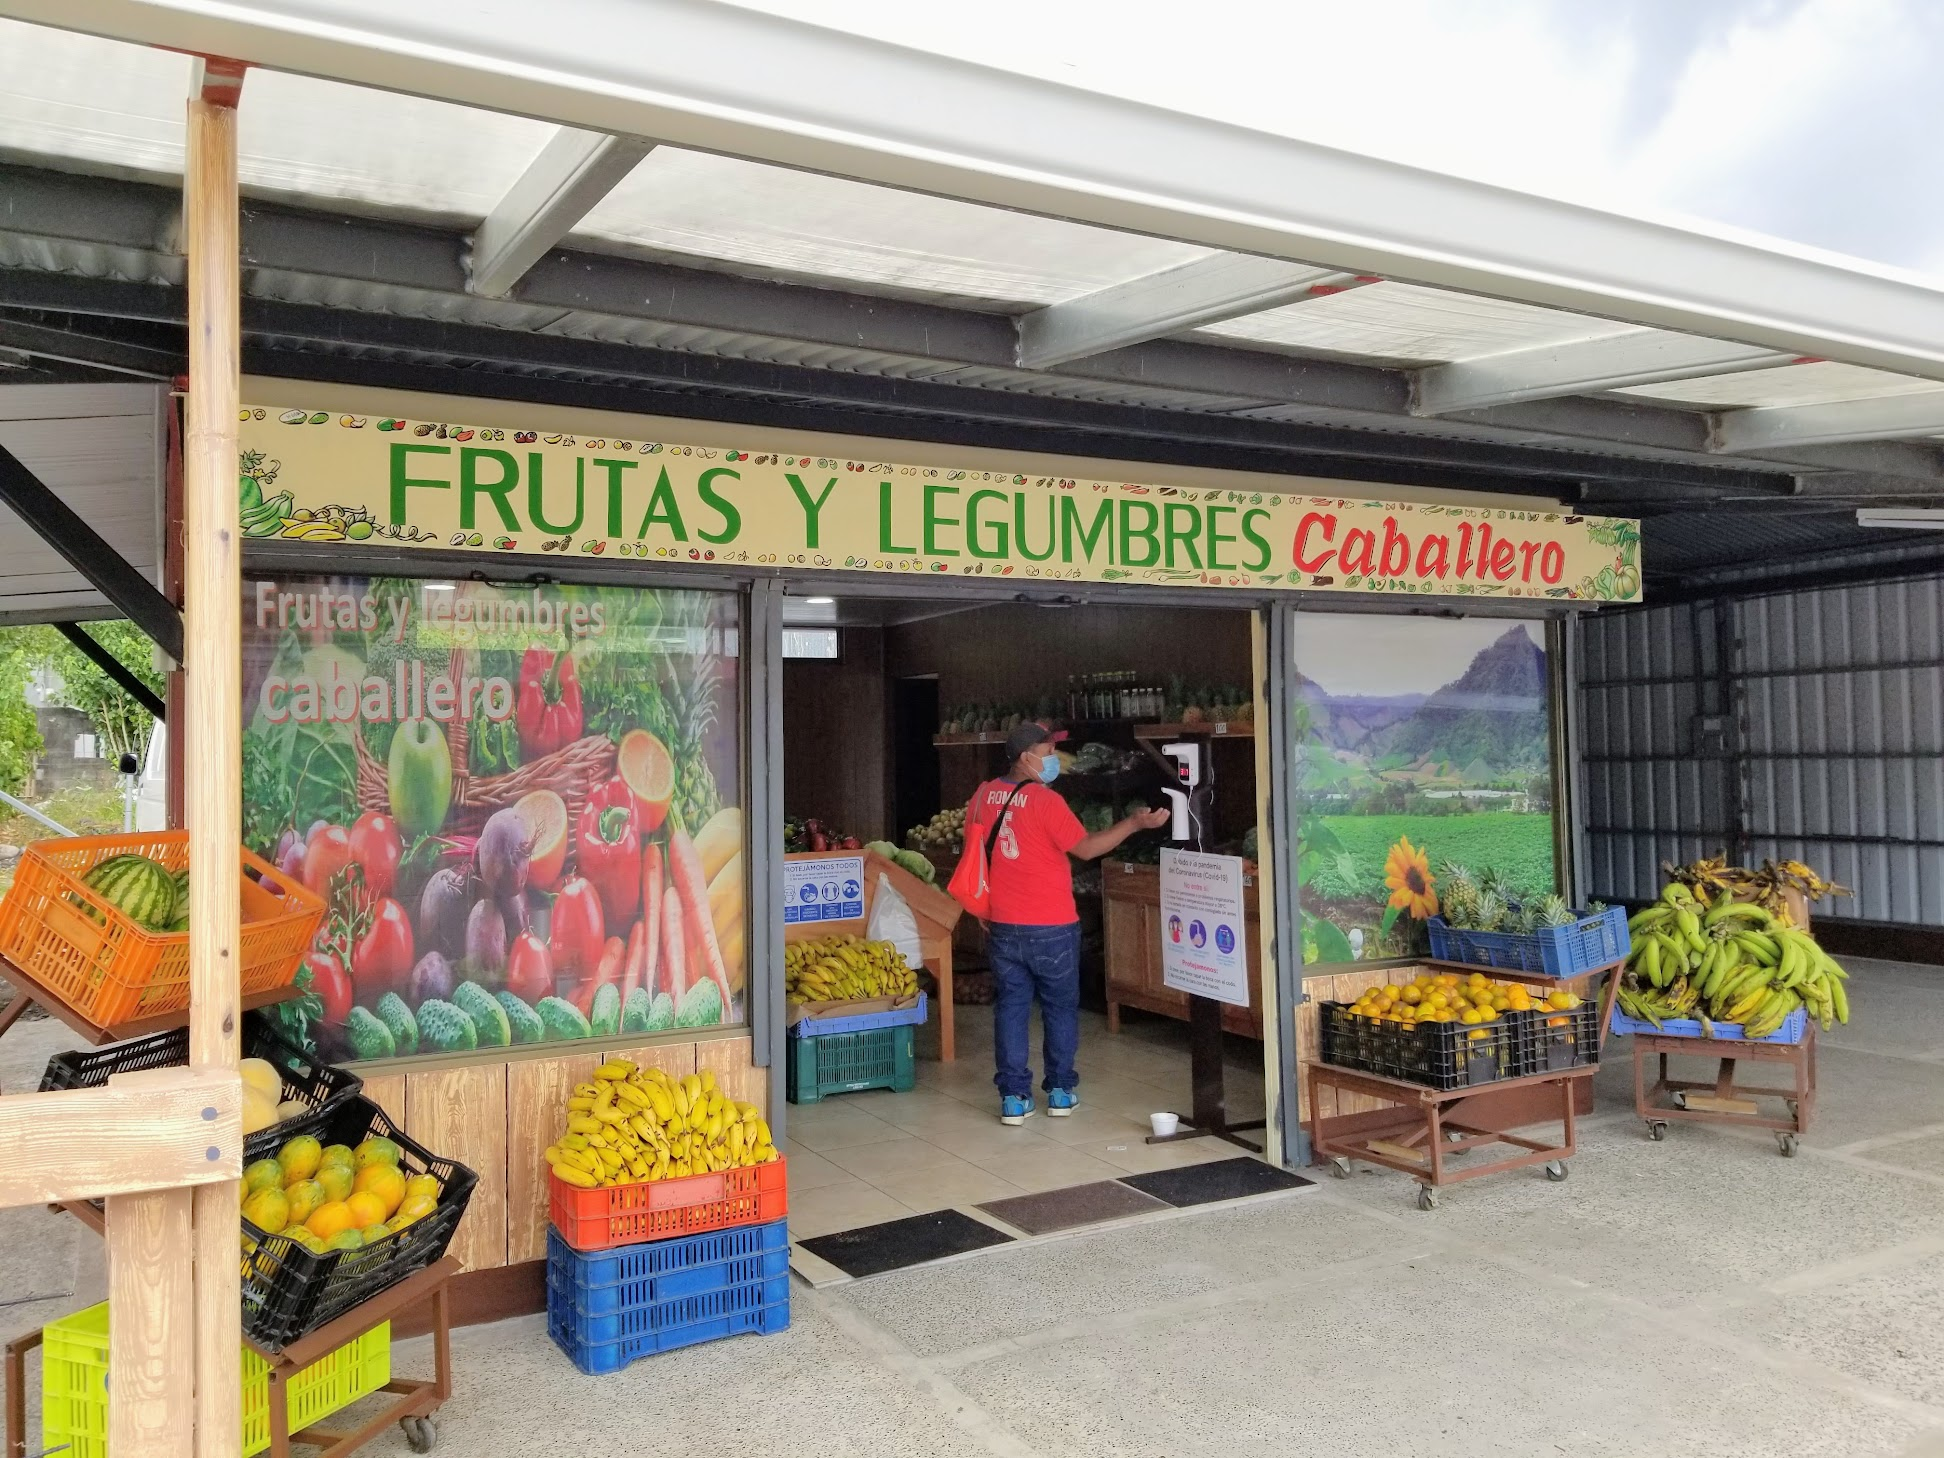 Panama Grocery - International Geoarbitrage living for expats